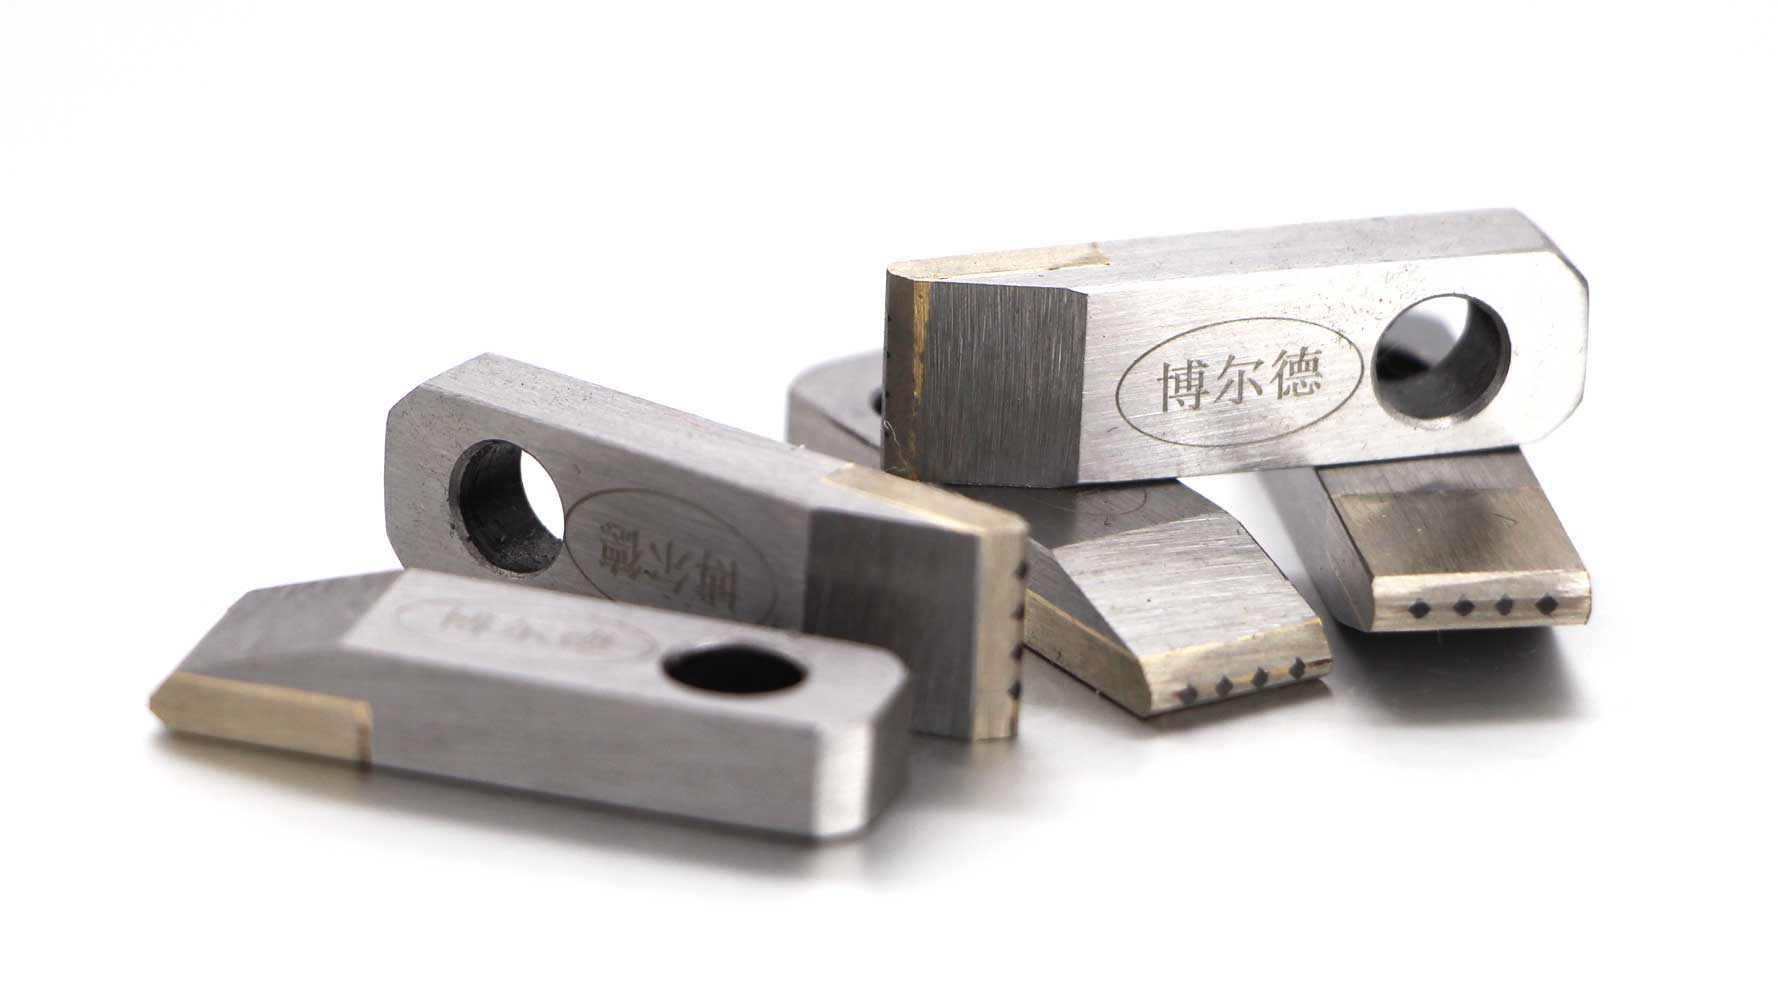 dressing tools for grinding wheels